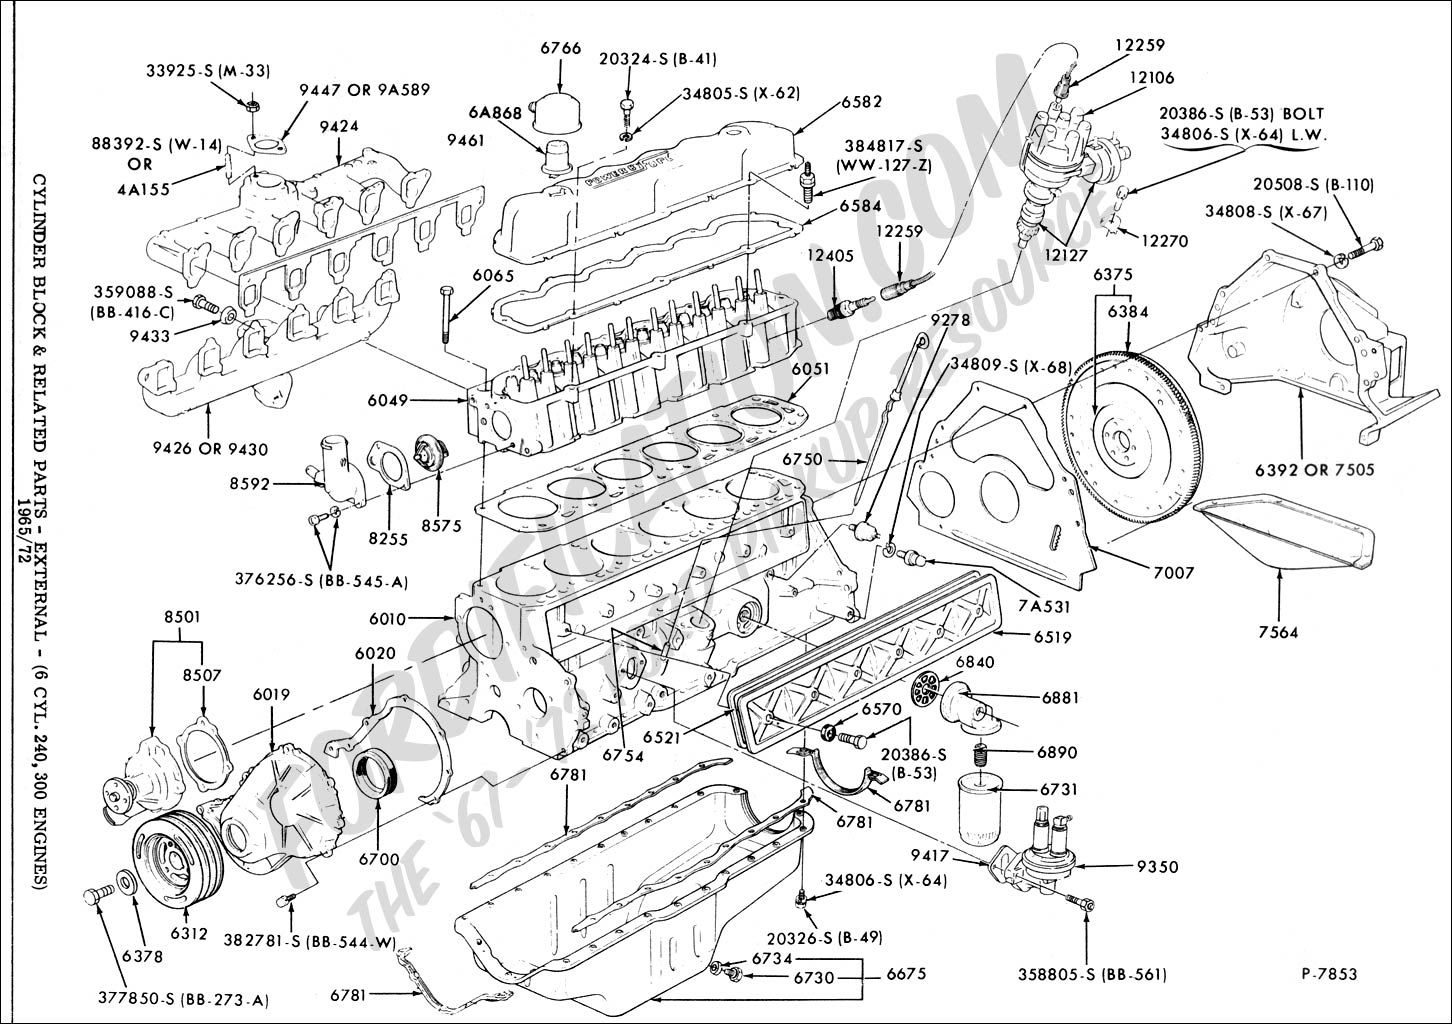 1989 302 ford engine diagram wiring diagram operations ford 302 engine parts diagram wiring diagram list [ 1452 x 1024 Pixel ]